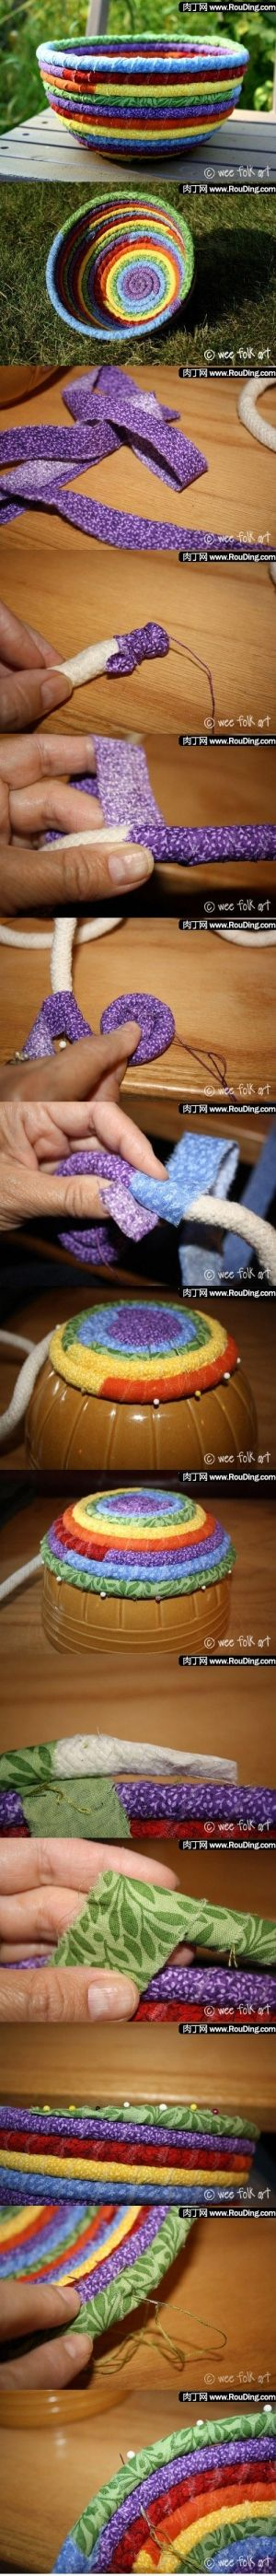 how to do a fabric coiled bowl